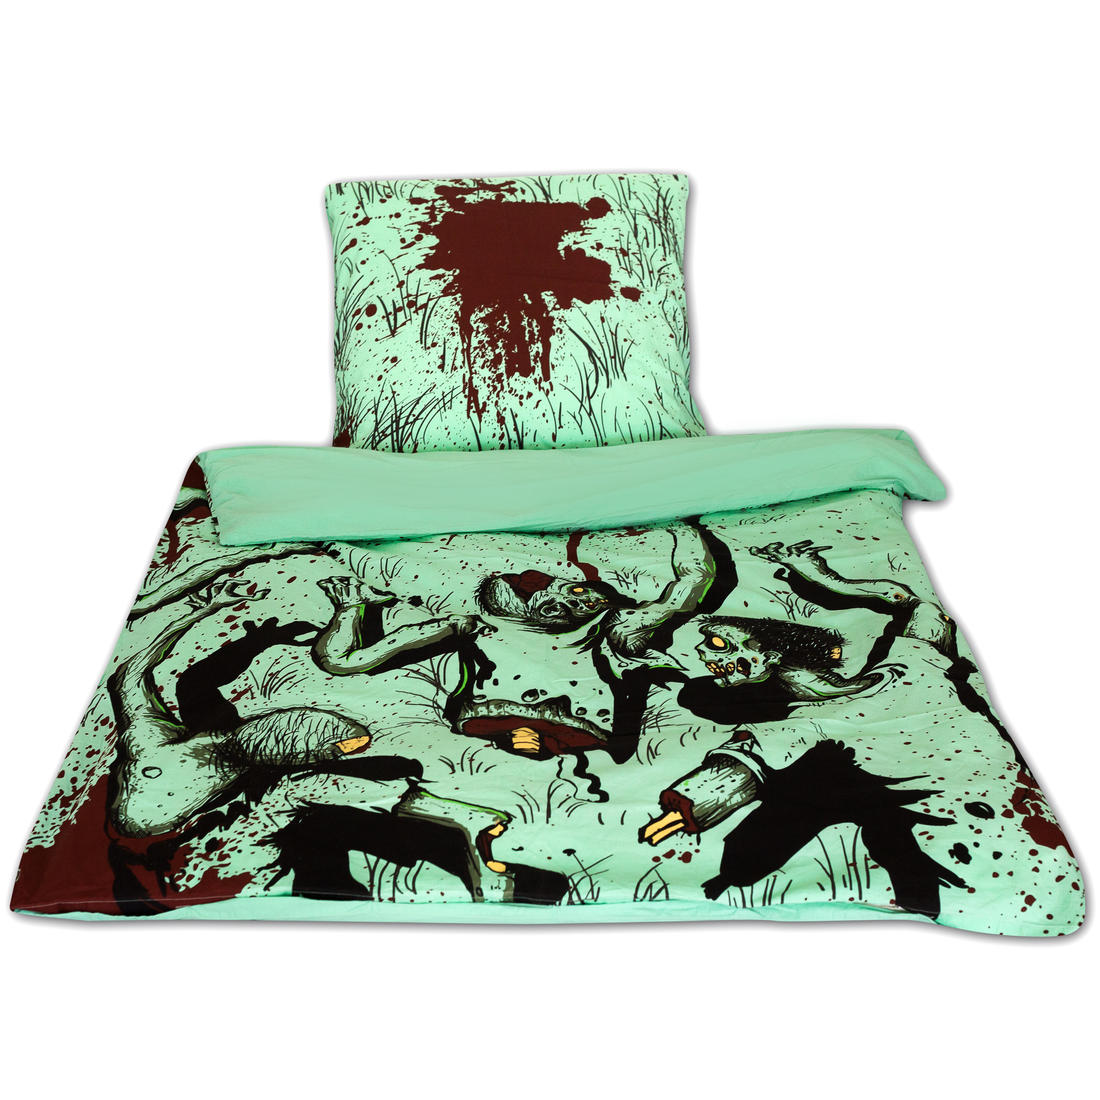 zombie bedlinnen getdigital. Black Bedroom Furniture Sets. Home Design Ideas